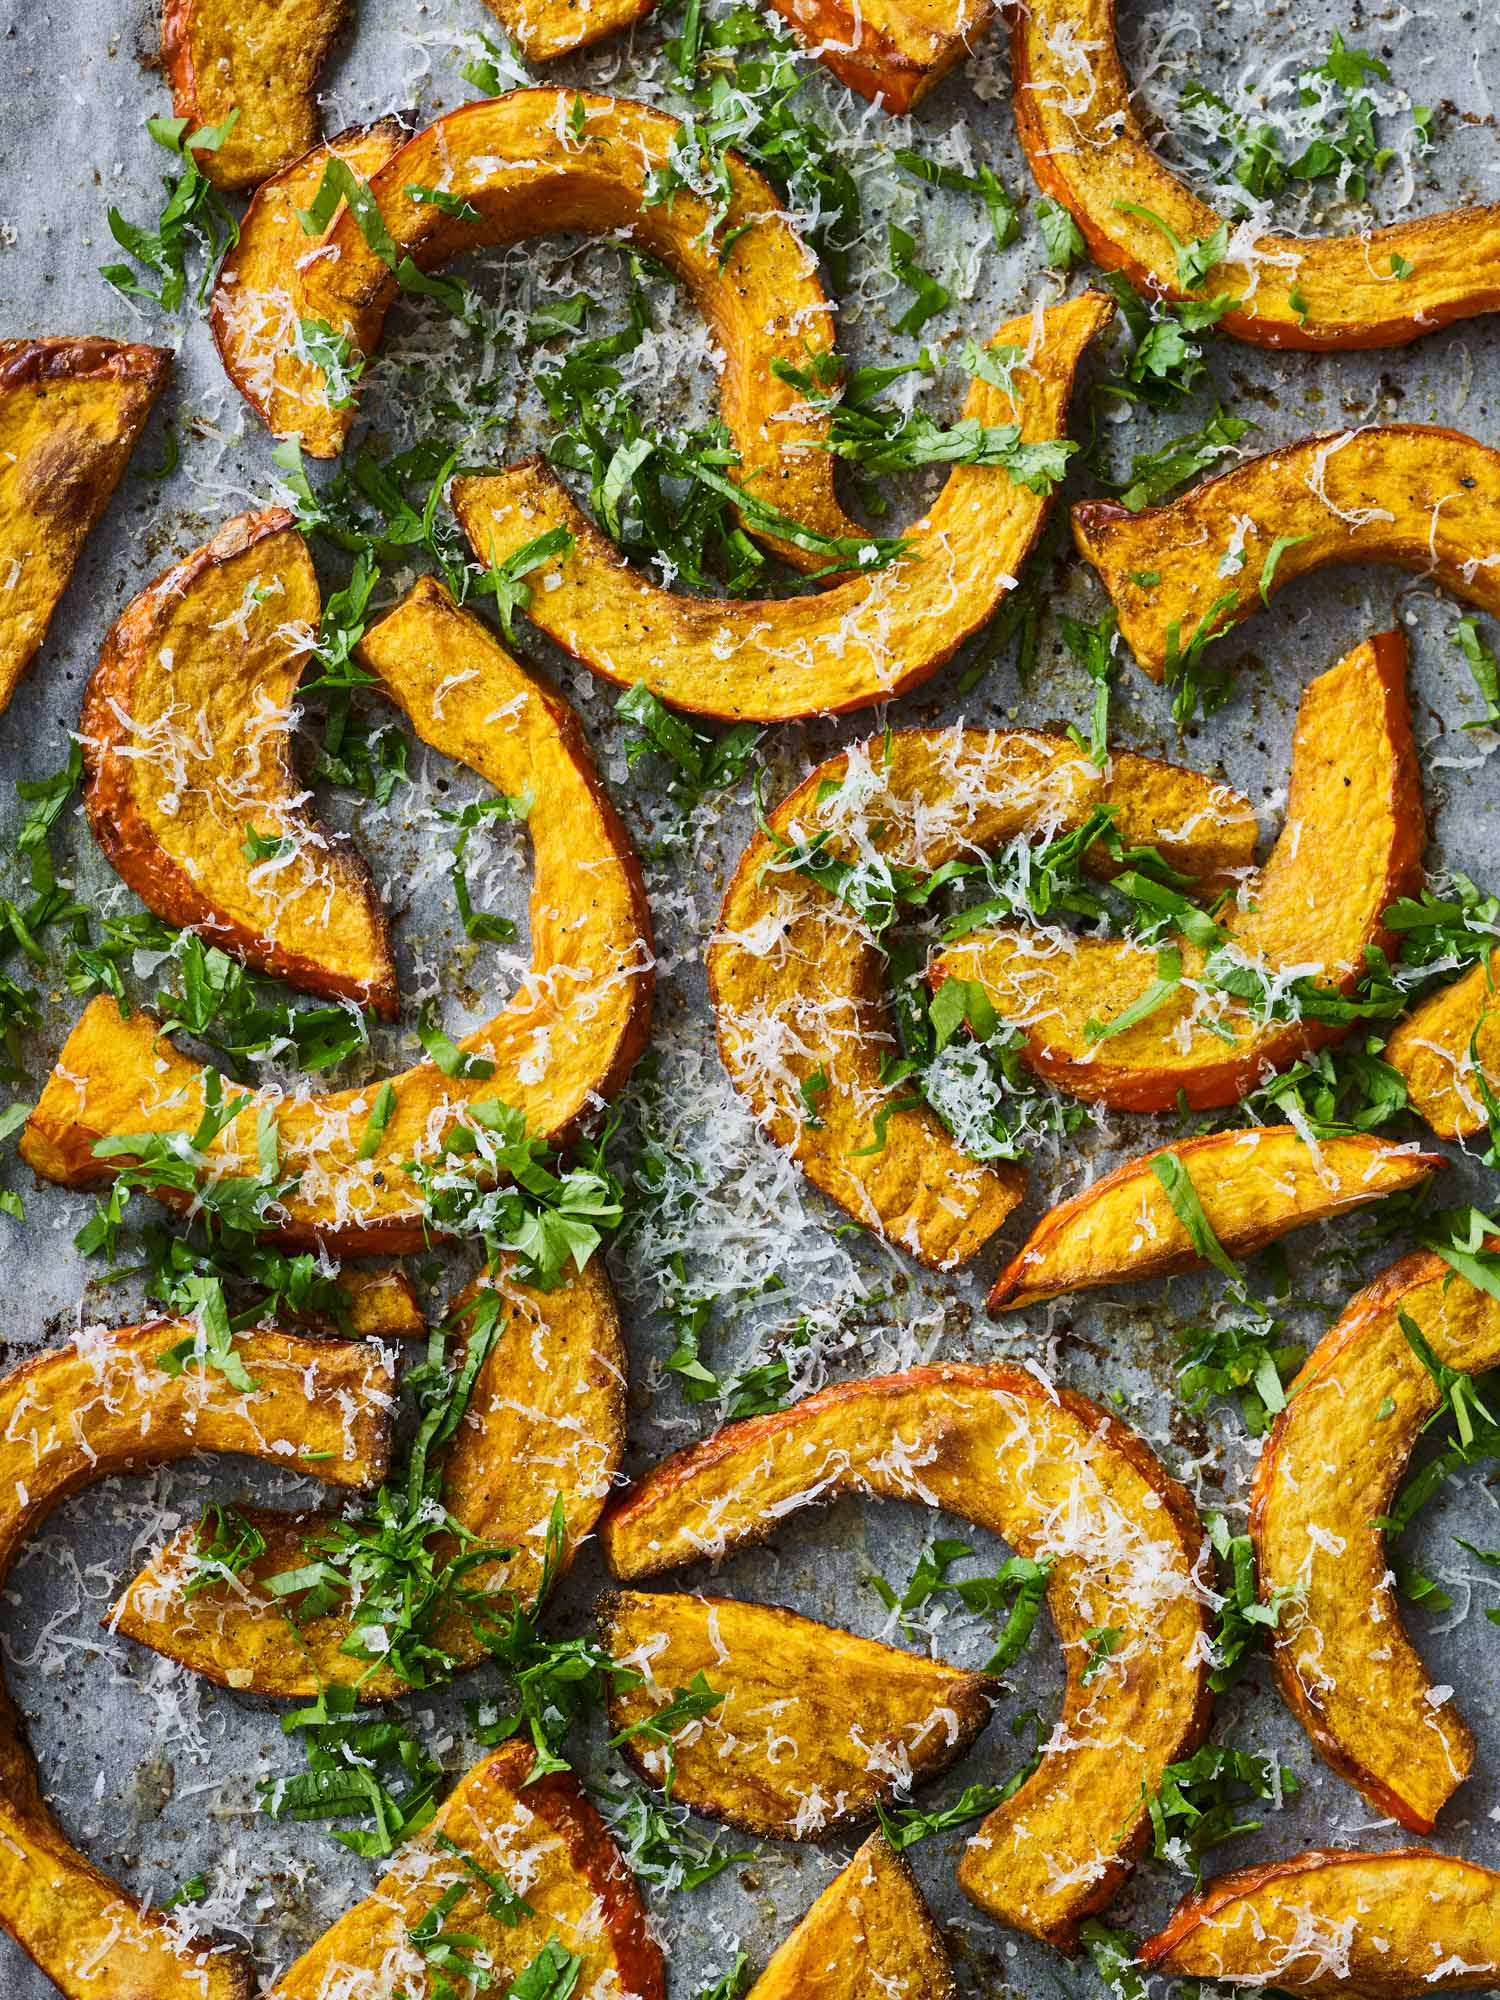 Roasted Acorn Squash with Curry and Parmesan